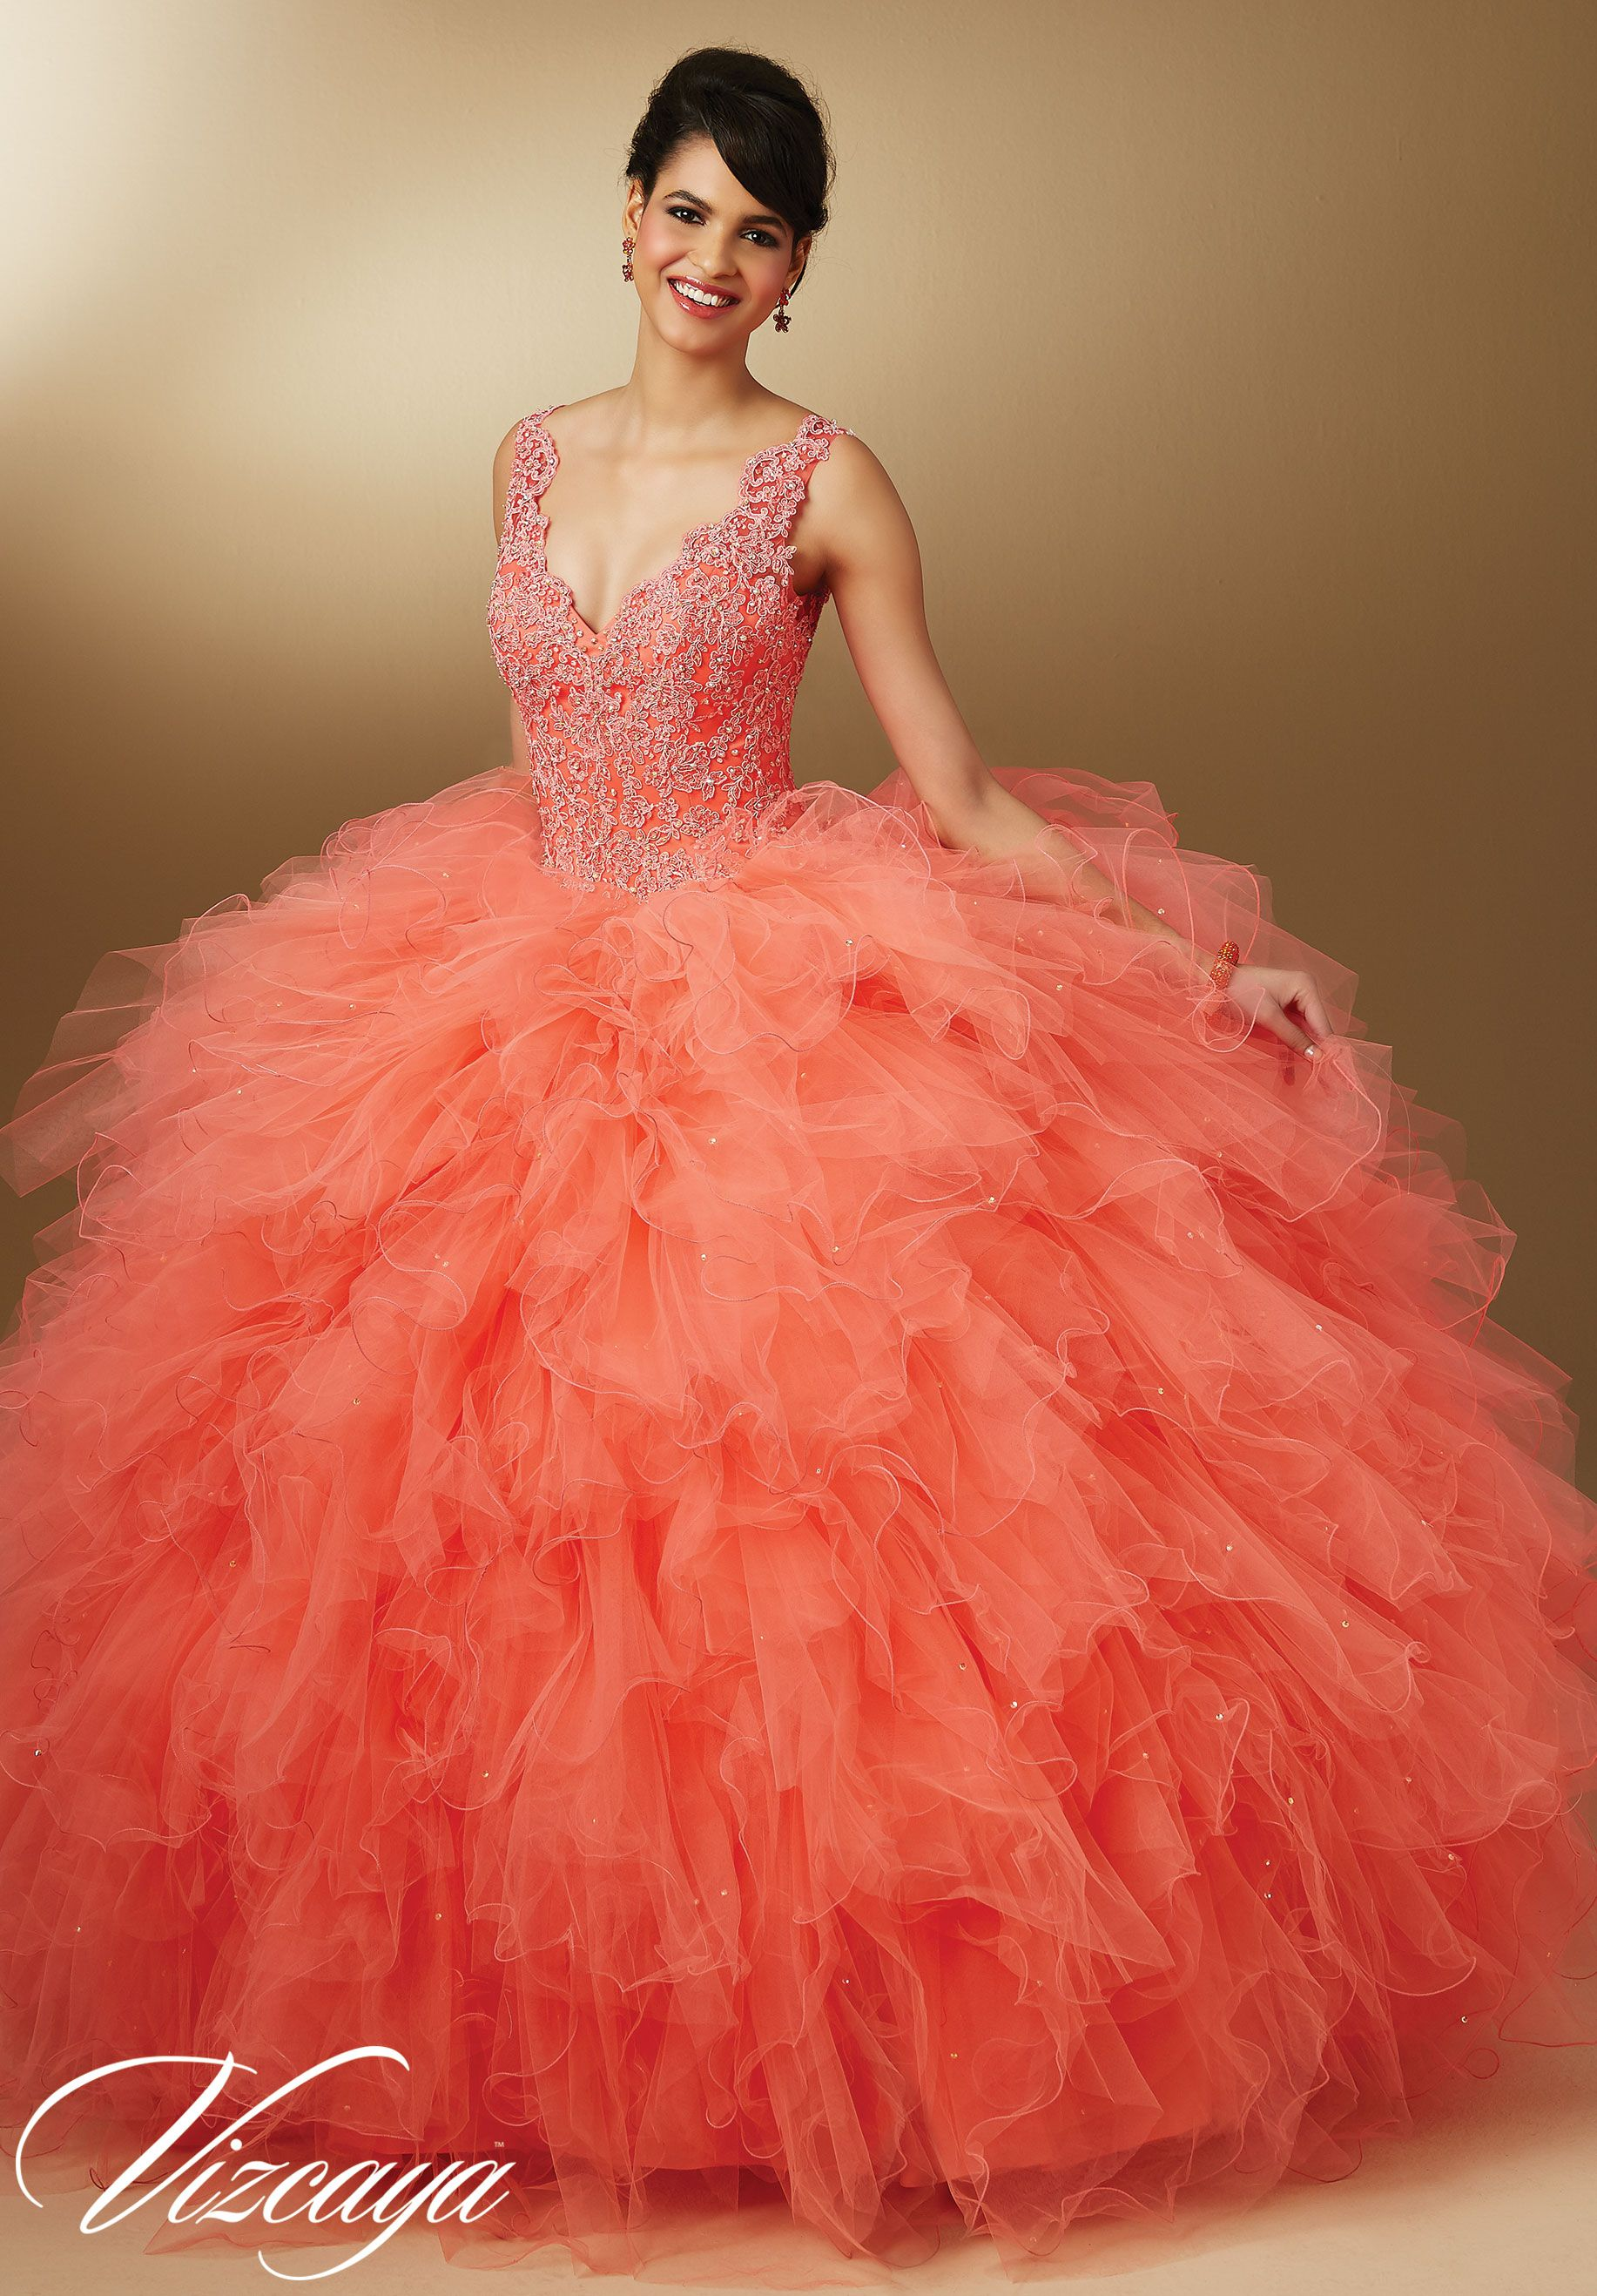 Coral Crystal Beaded Lace on Ruffled Tulle Princess Ball Gown with Straps, V Neck. Matching Stole included. Color available: Champagne, Coral, Aqua and White. Quinceanera Dress by Vizcaya Morilee Designer Madeline Gardner.